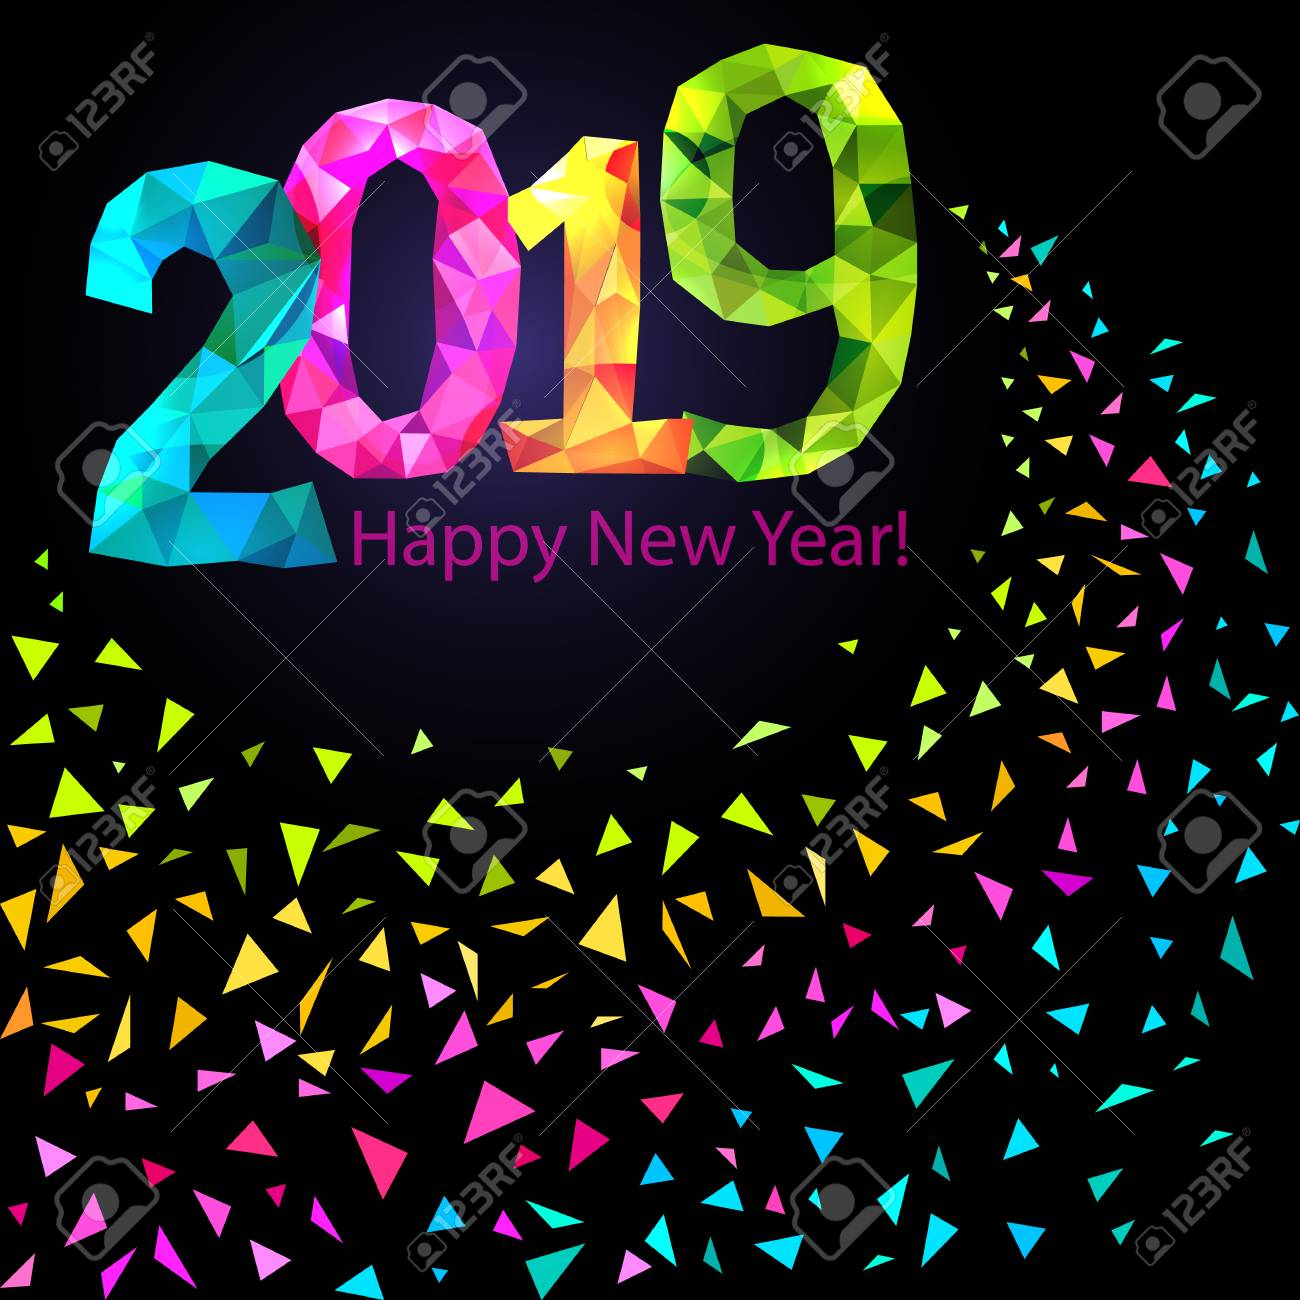 vector happy new year 2019 greeting banner festive background with colorful confetti party popper and